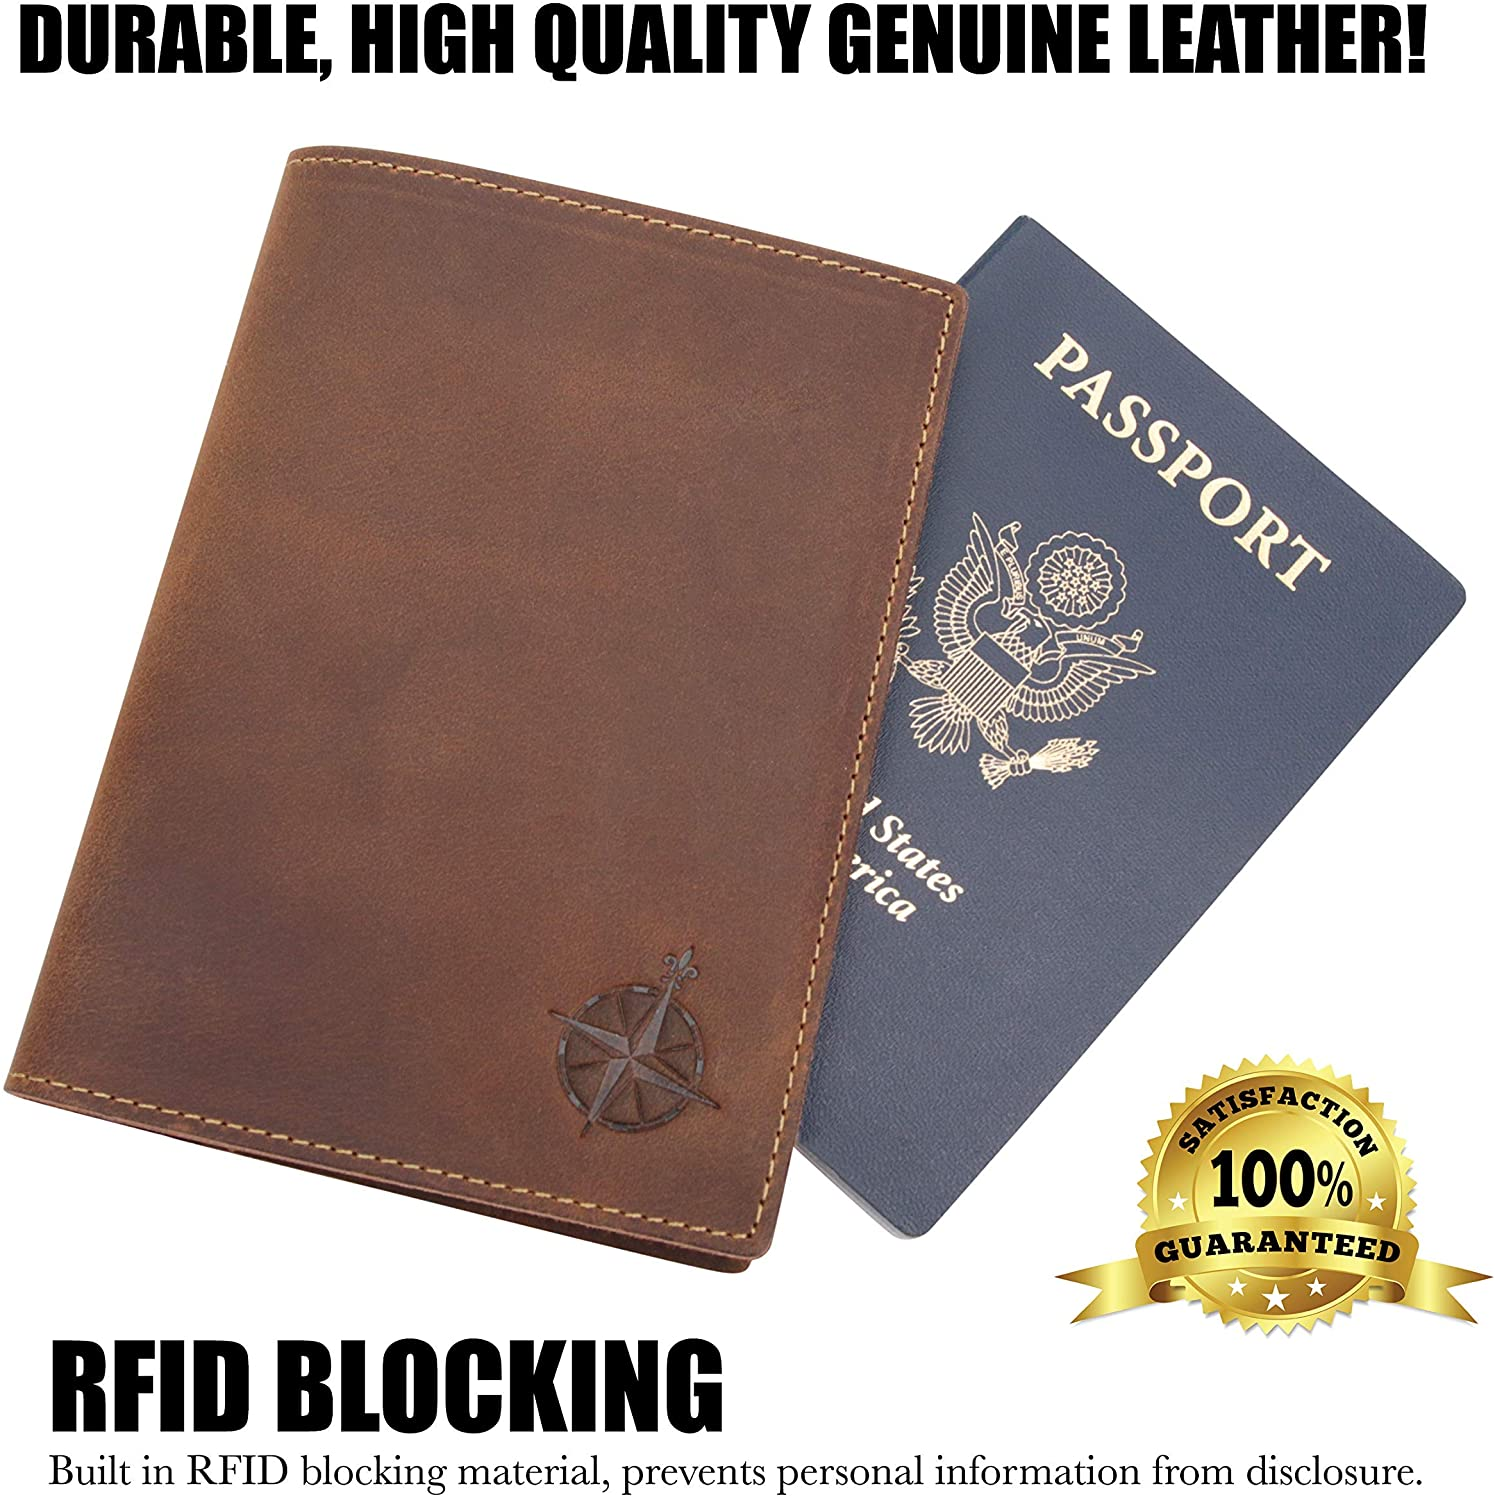 Leather Passport Holder Wallet Cover Case RFID Blocking Travel Wallet Photography Of Missile Silo Hole